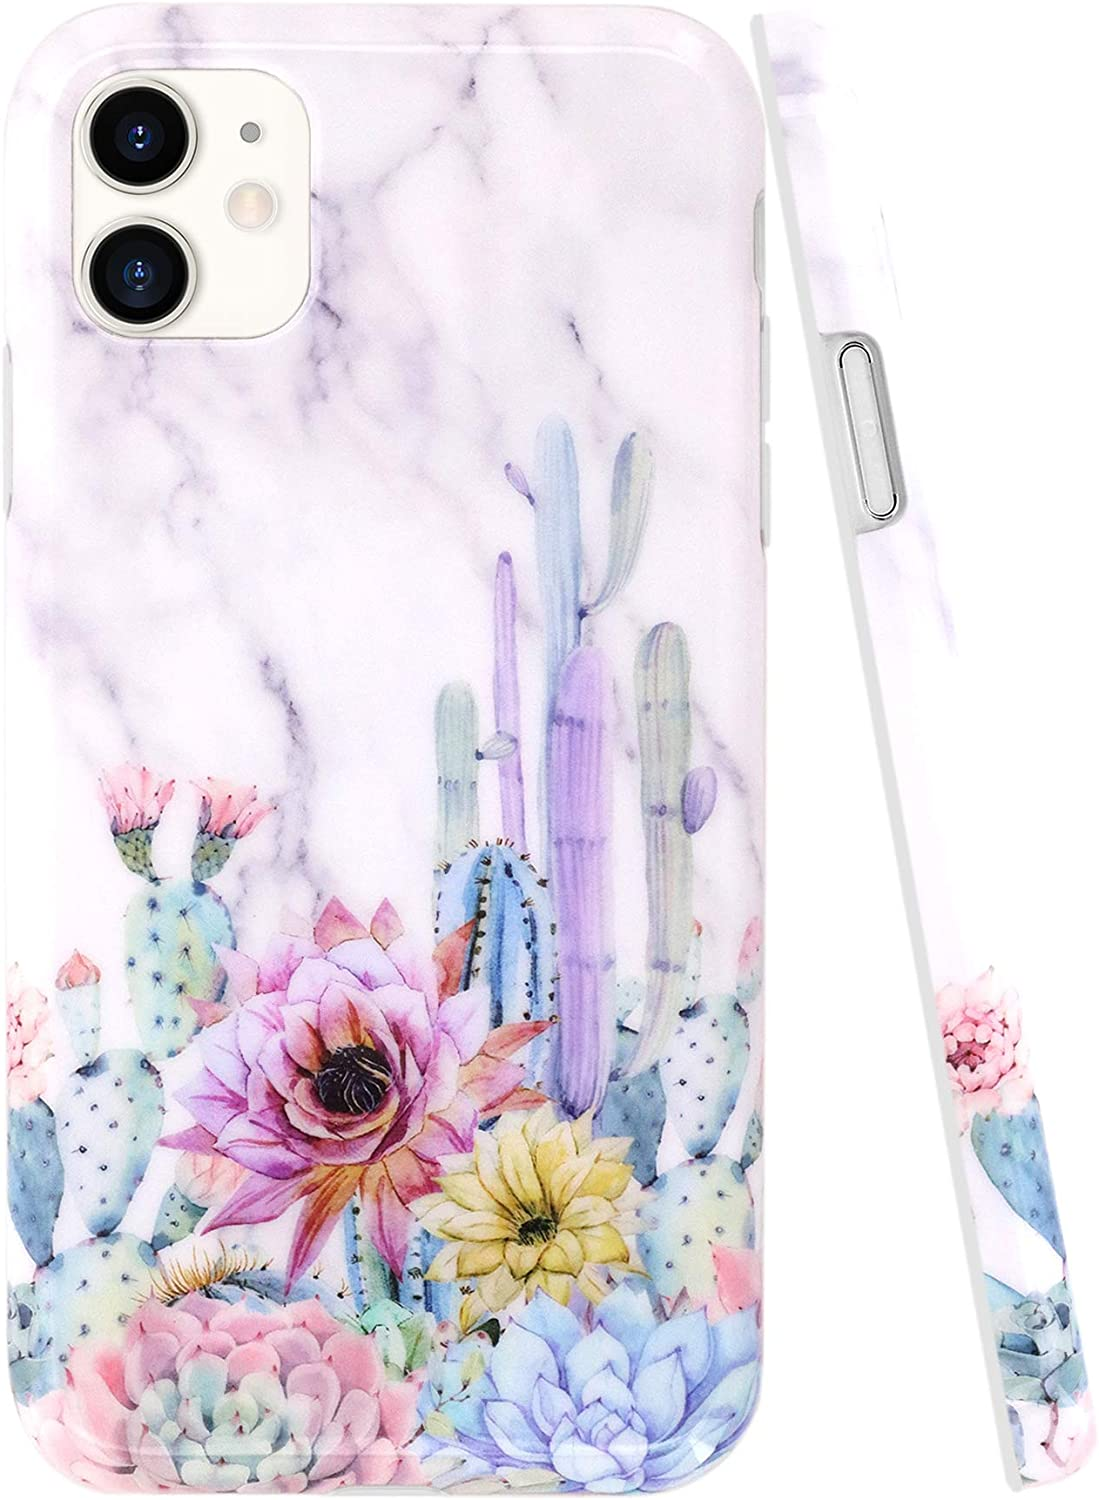 A-Focus Case for iPhone 11 Case Cactus, Cute White Marble Floral Cactus Texture Pattern Protective TPU Silicone Rubber Cover Case for iPhone 11 6.1 inch Glossy Flower Marble Cactus